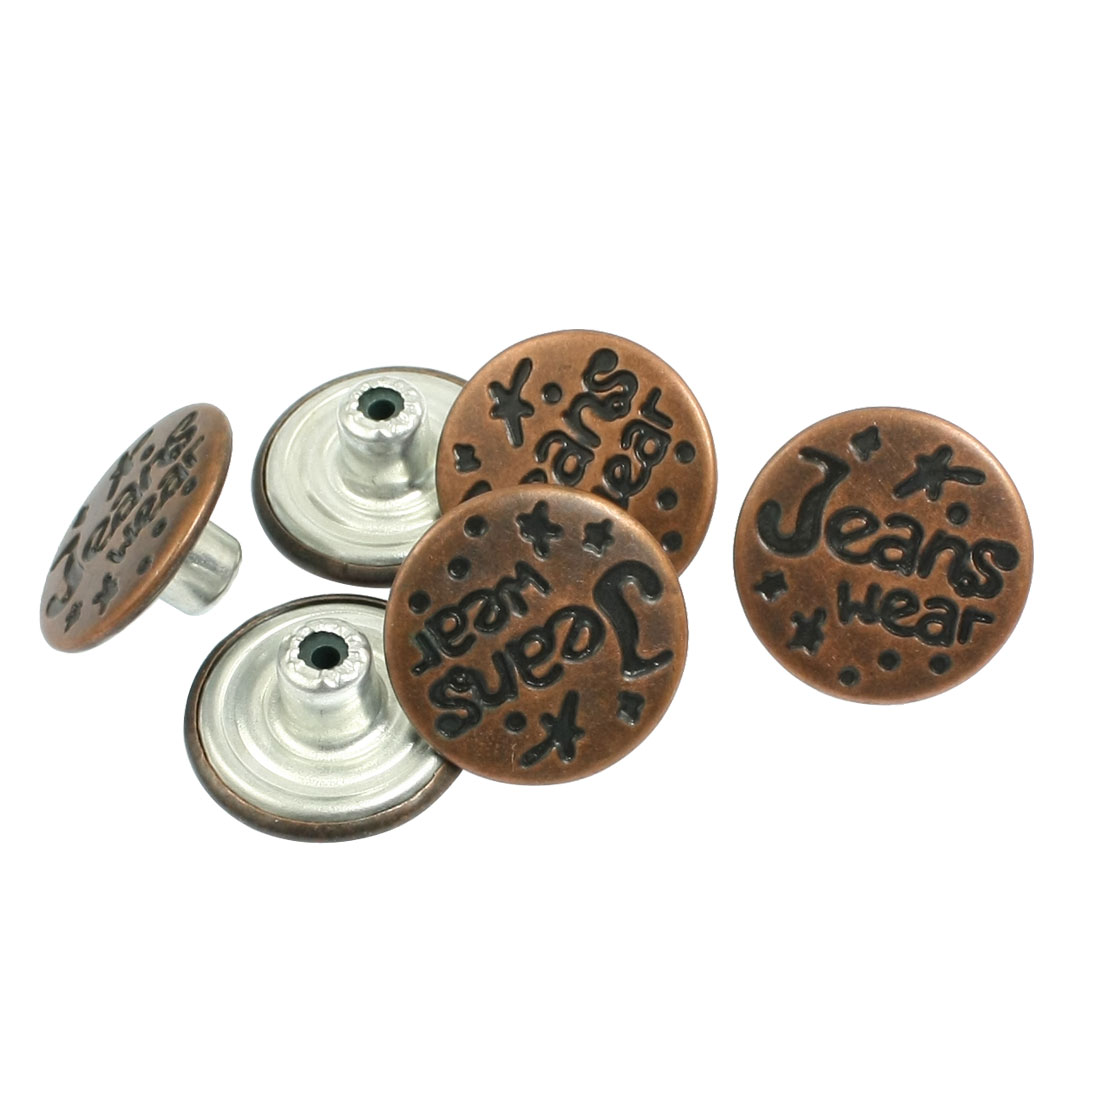 6 Pieces Metal Carved Jeans Repair Parts Tack Buttons